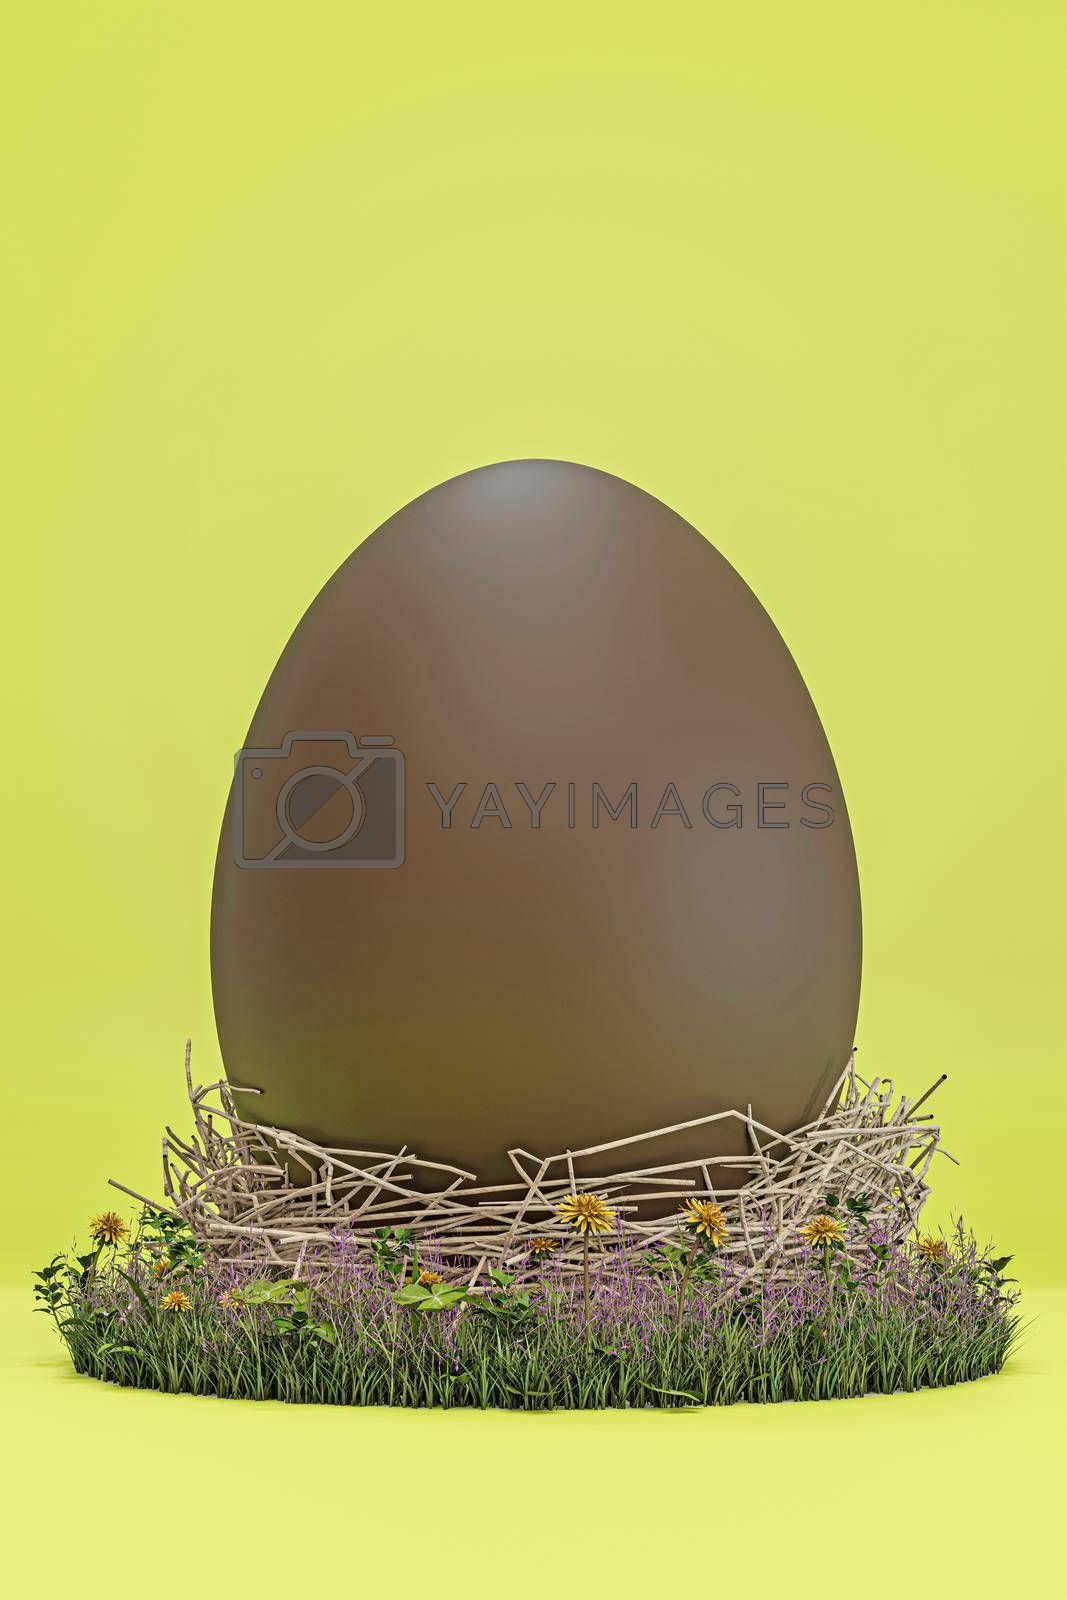 easter egg isolated on yellow background 3d illustration